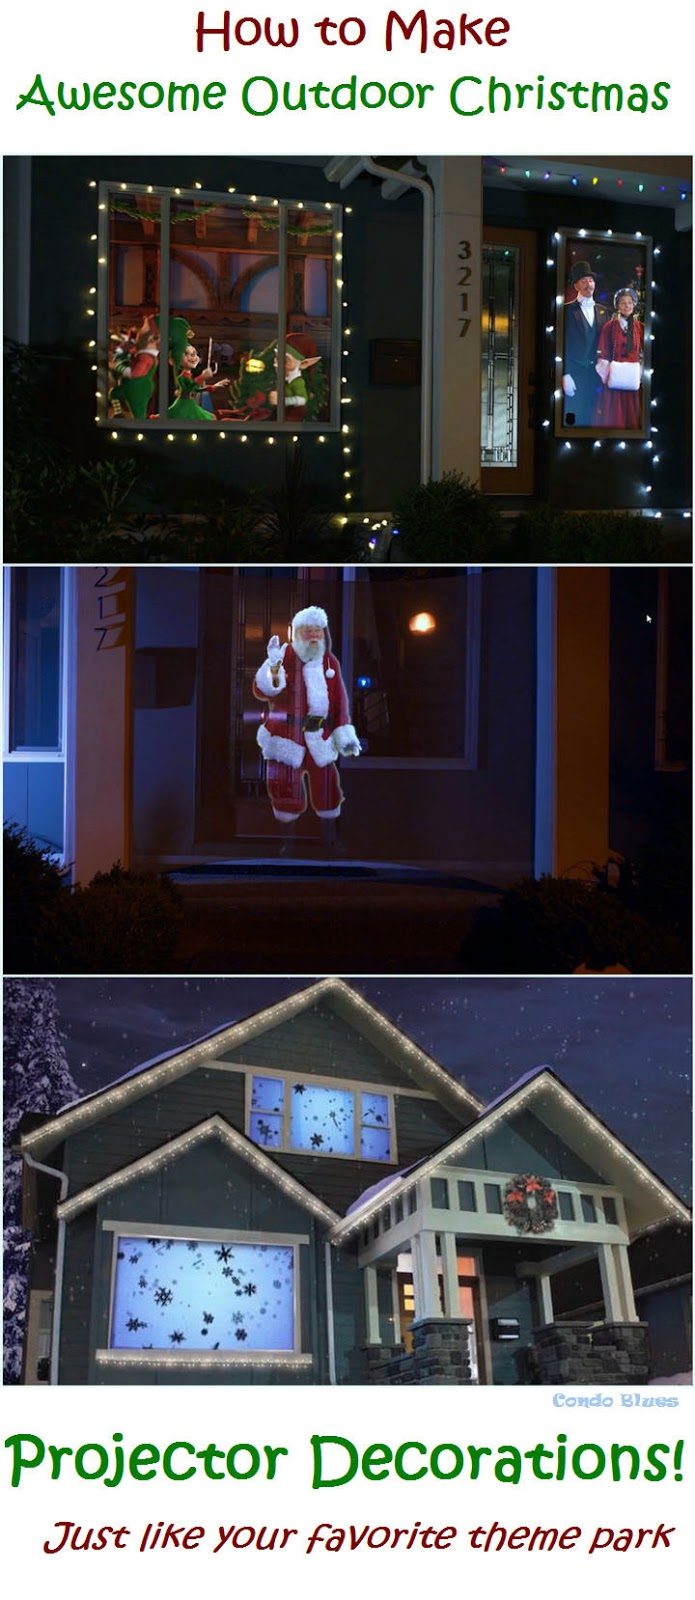 which is perfectly fine because this year im decorating my house with a life size live action santa claus and im repurposing my halloween decorations to - Christmas Outdoor Projector